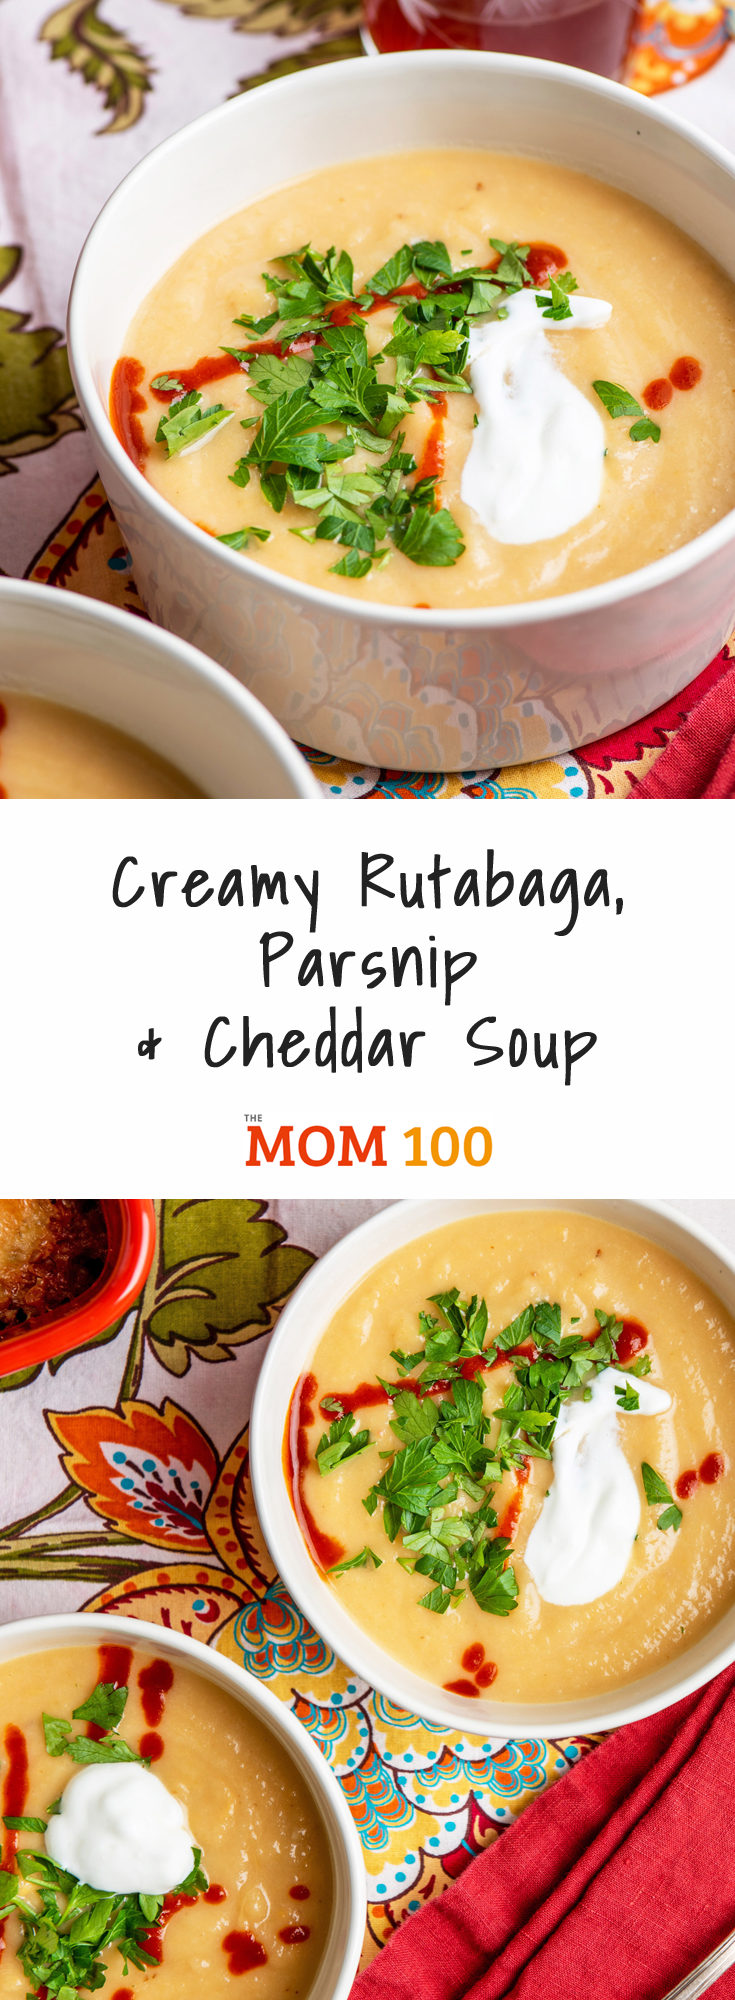 Creamy Rutabaga, Parsnip and Cheddar Soup: Simple, humble root vegetables turn into a beautiful, creamy, soul soothing soup.